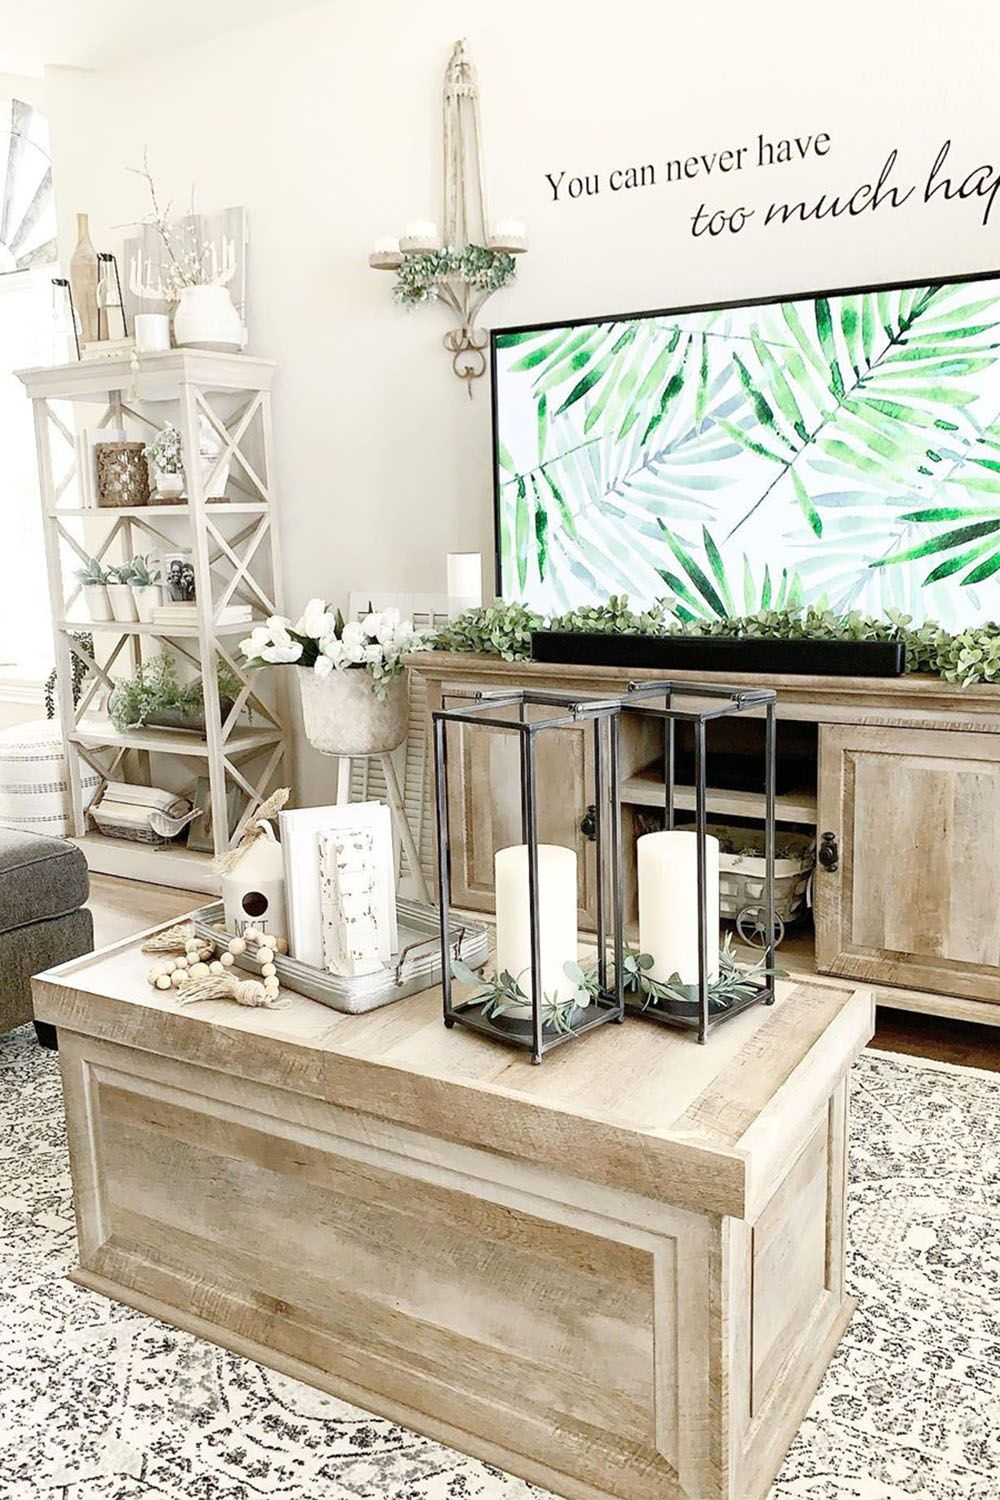 a11a0604532ae79d05389631af1bb261 - Better Homes And Gardens Crossmill Collection 3 Shelf Bookcase Weathered